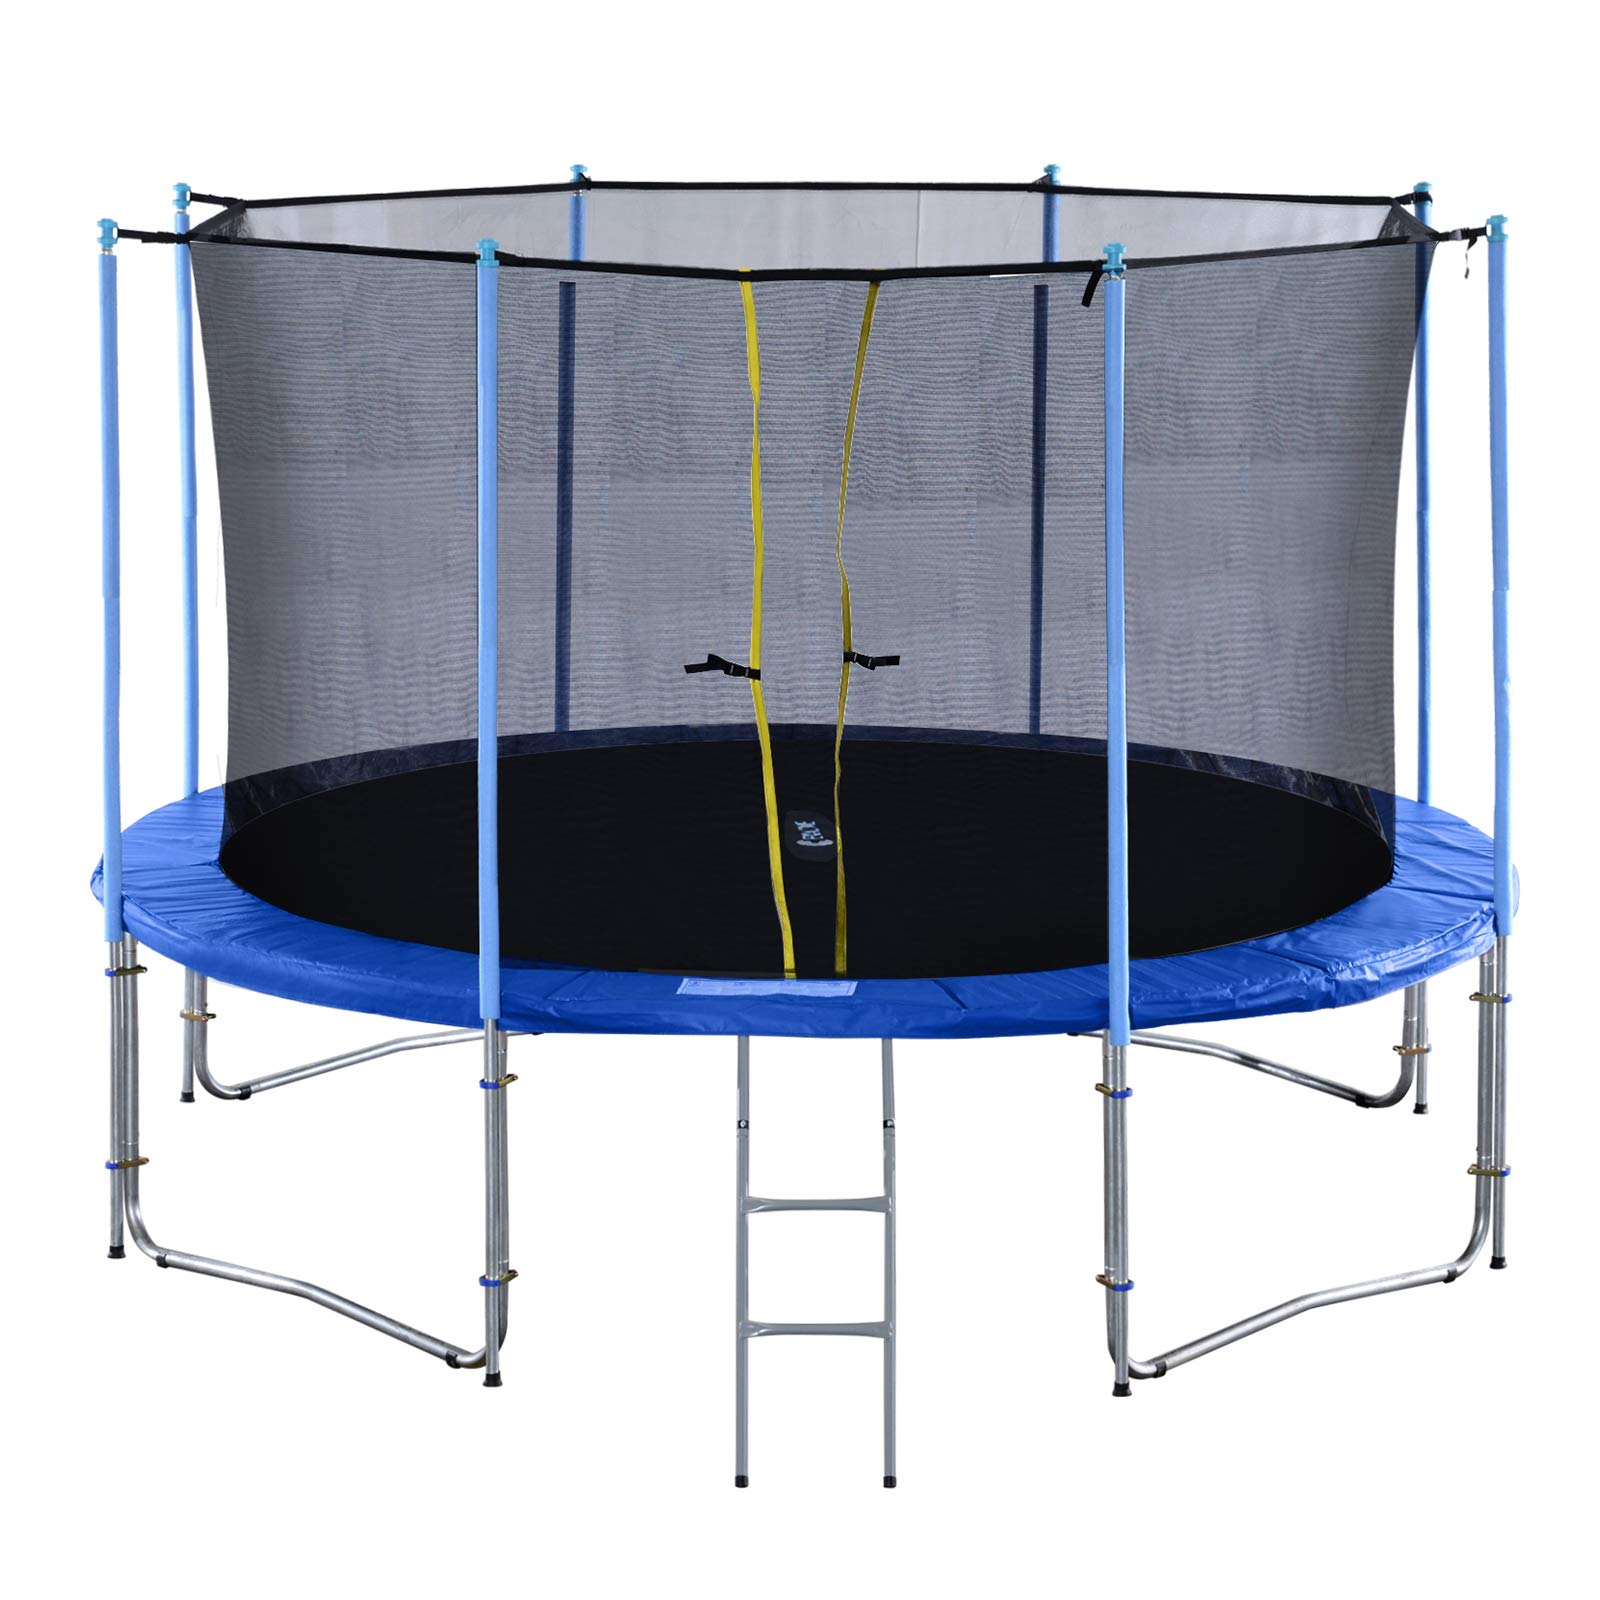 Exacme Outdoor Trampoline 16 15 14 12 10 Foot with Intra Enclosure Spring Cover Ladder, Heavy Duty, TUV Approved, 6181 C10-C16